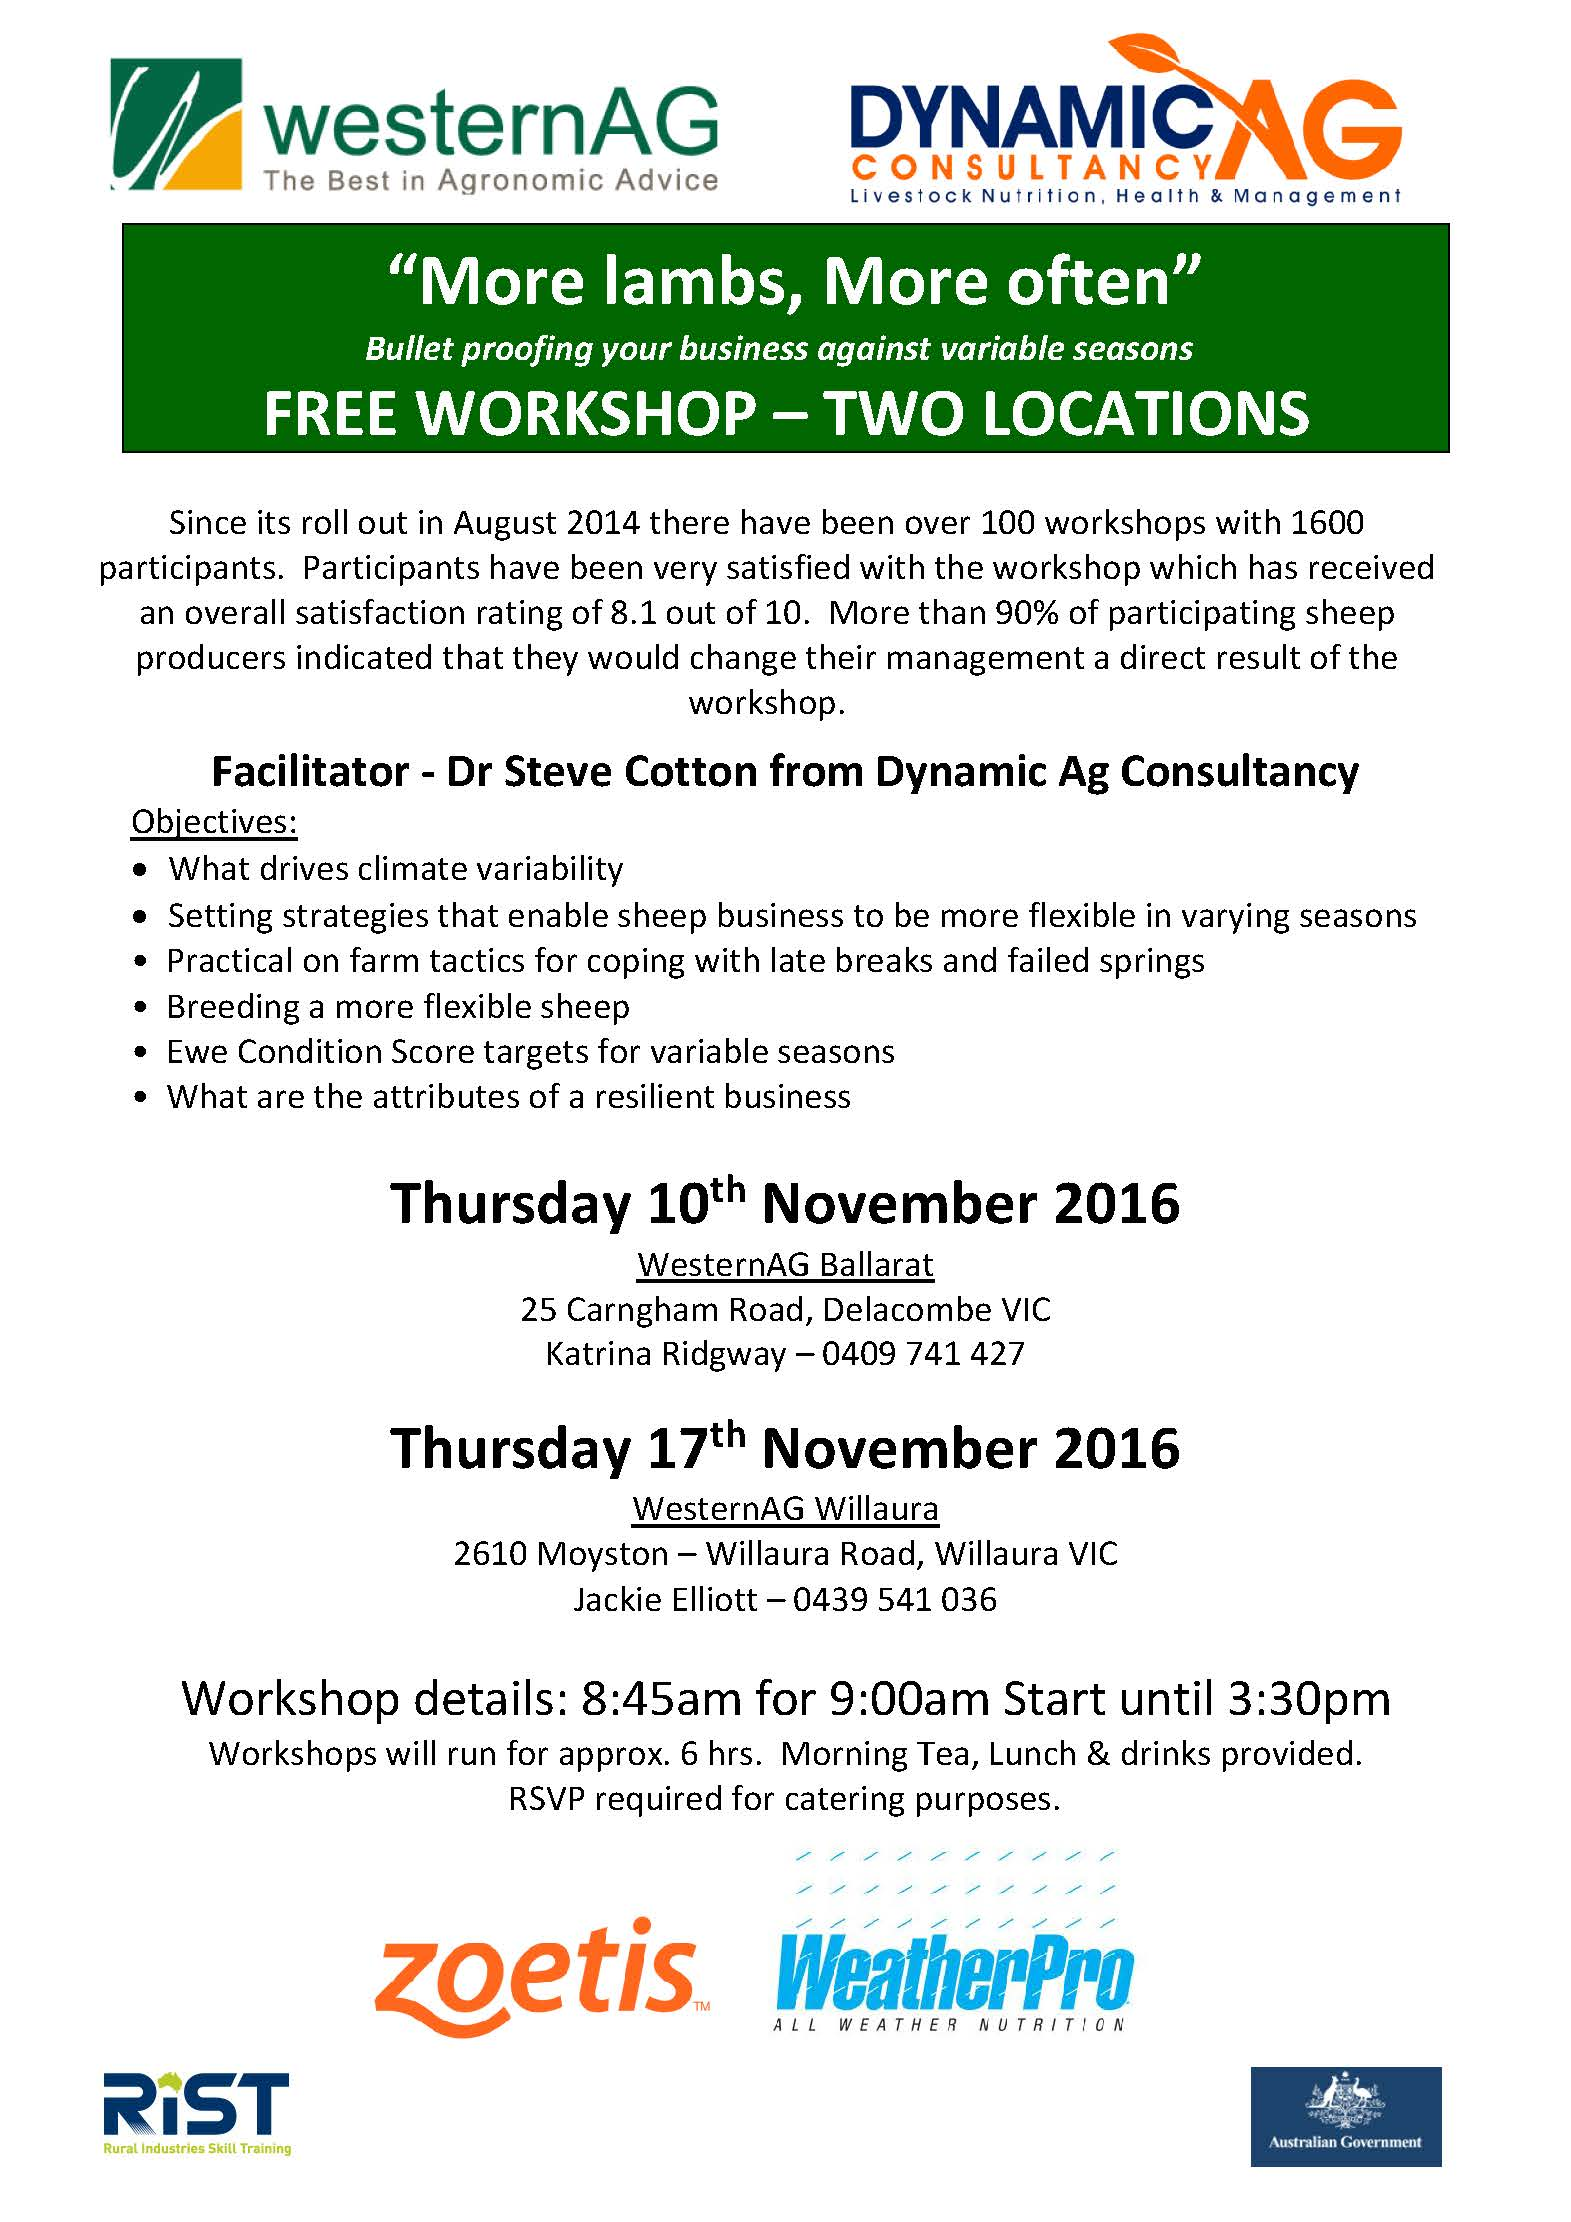 Upcoming More Lambs More Often workshop - Dynamic Ag